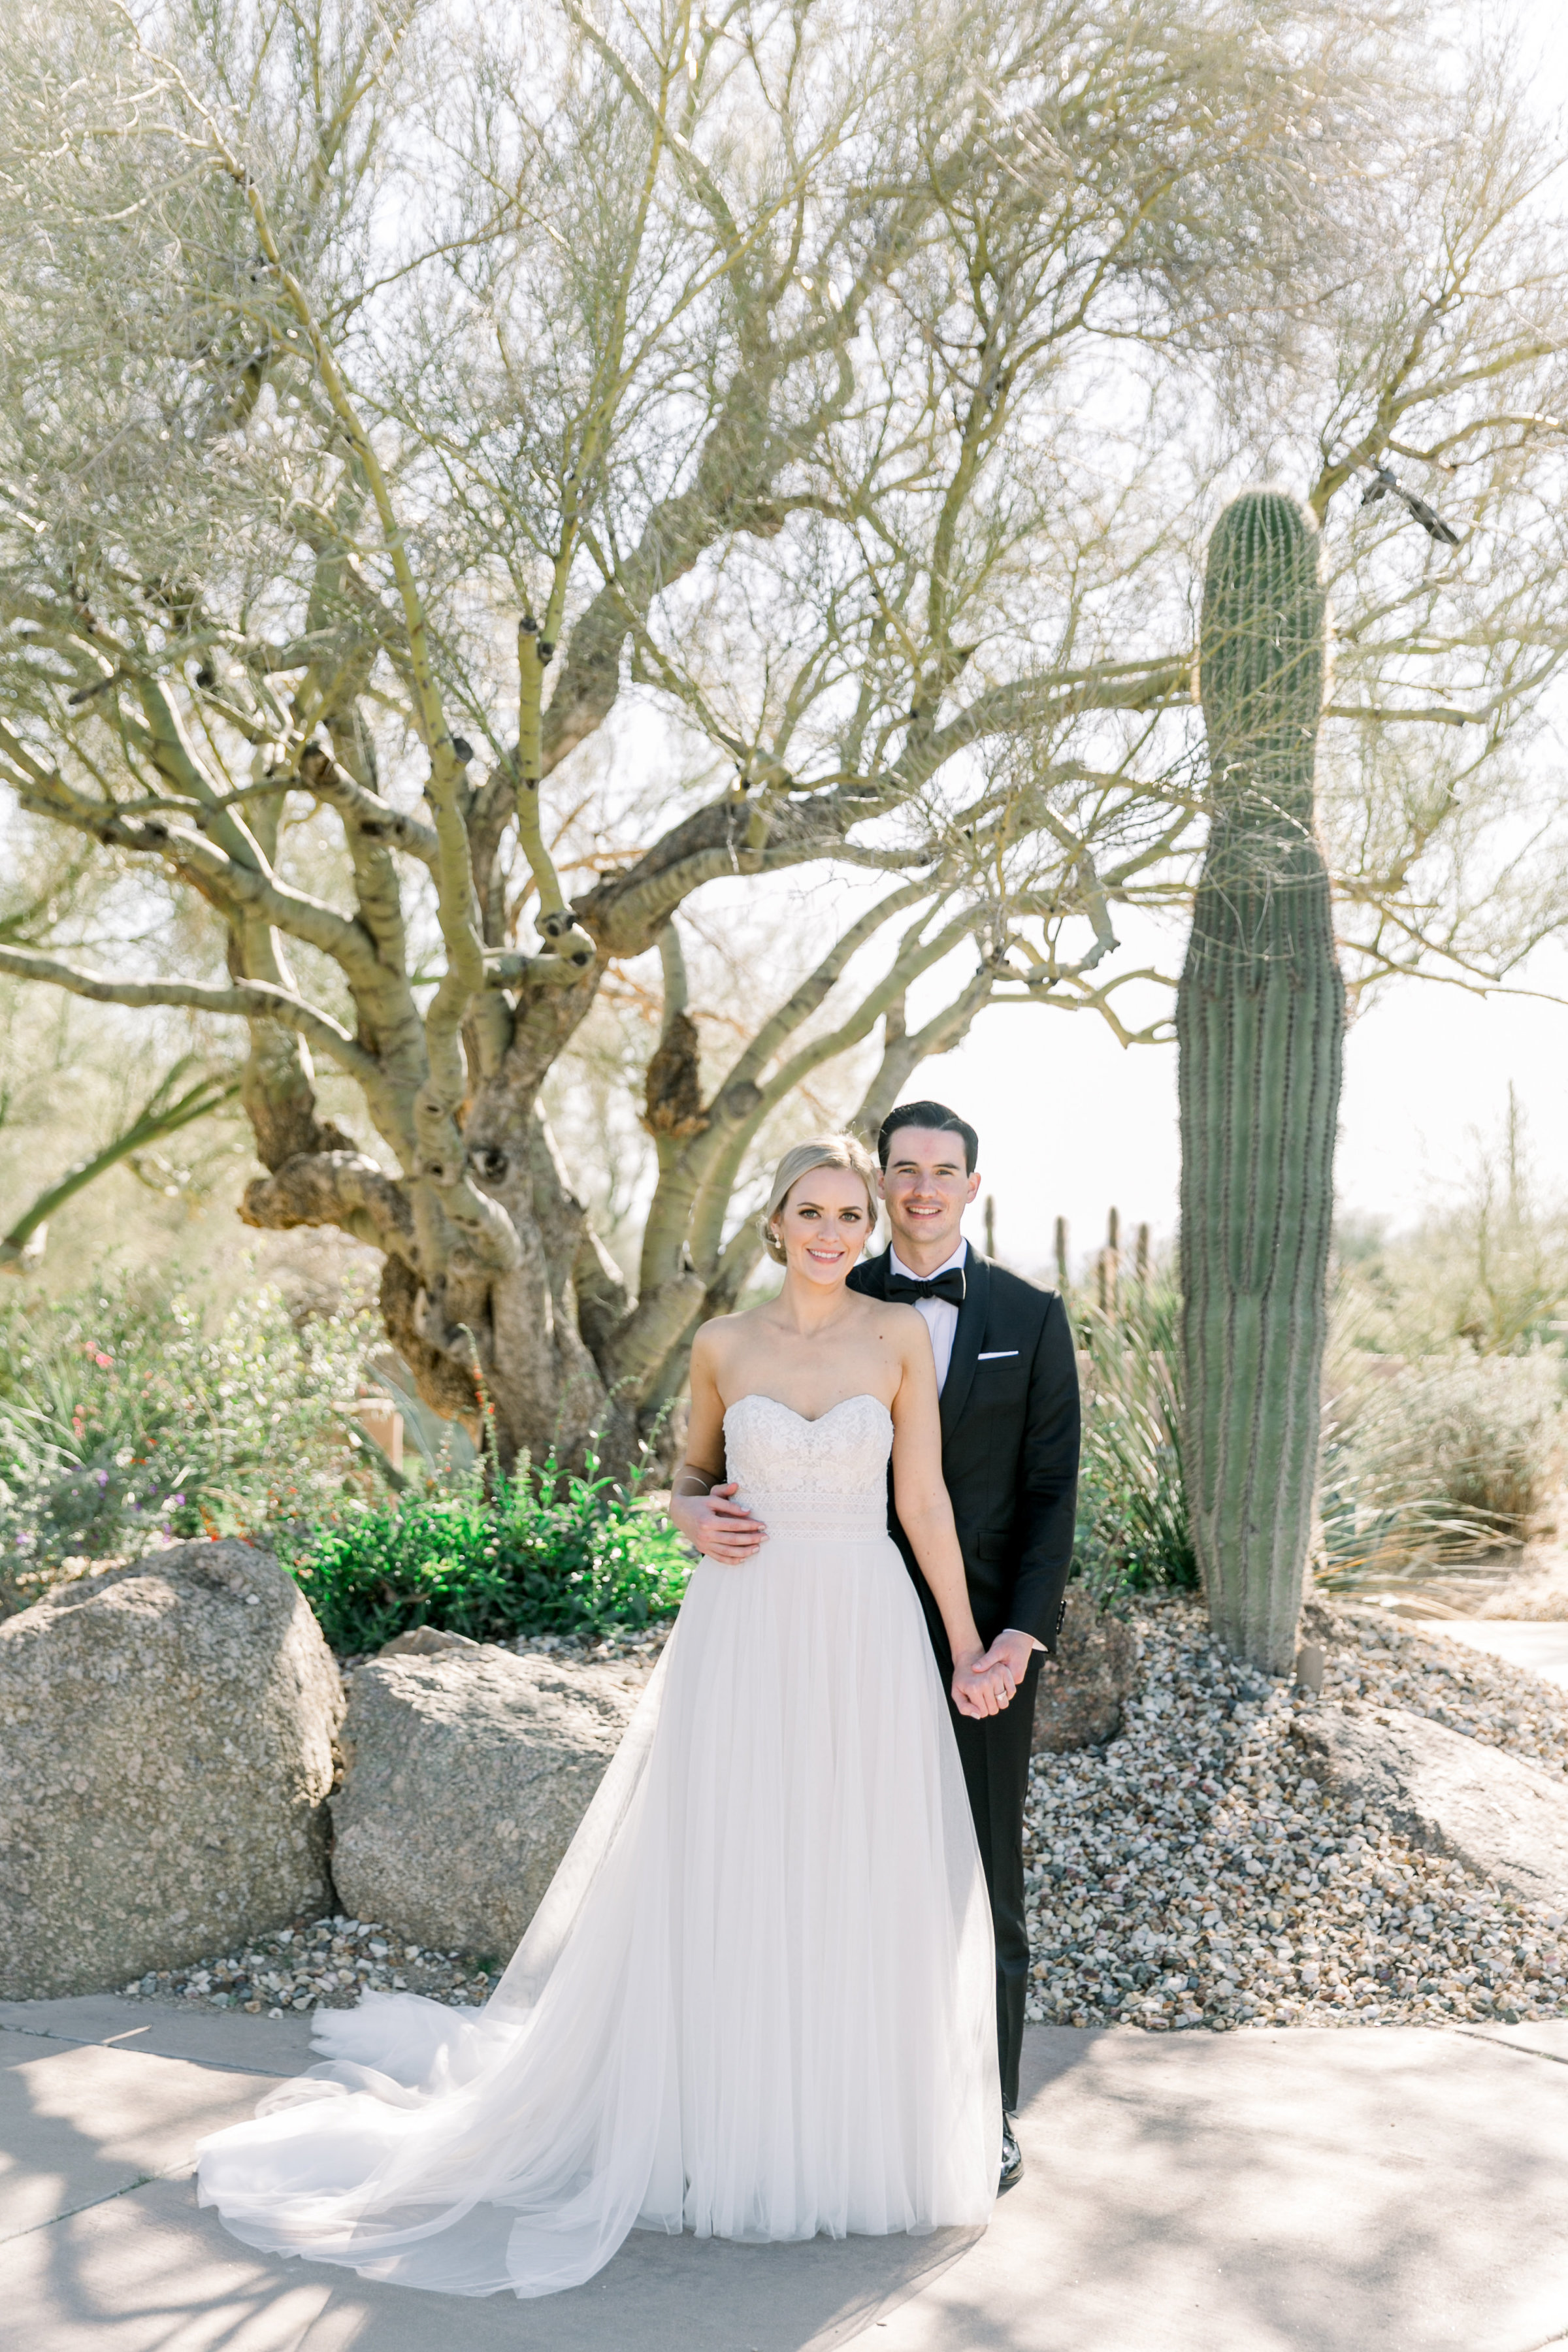 Karlie Colleen Photography - Arizona Wedding at The Troon Scottsdale Country Club - Paige & Shane -188